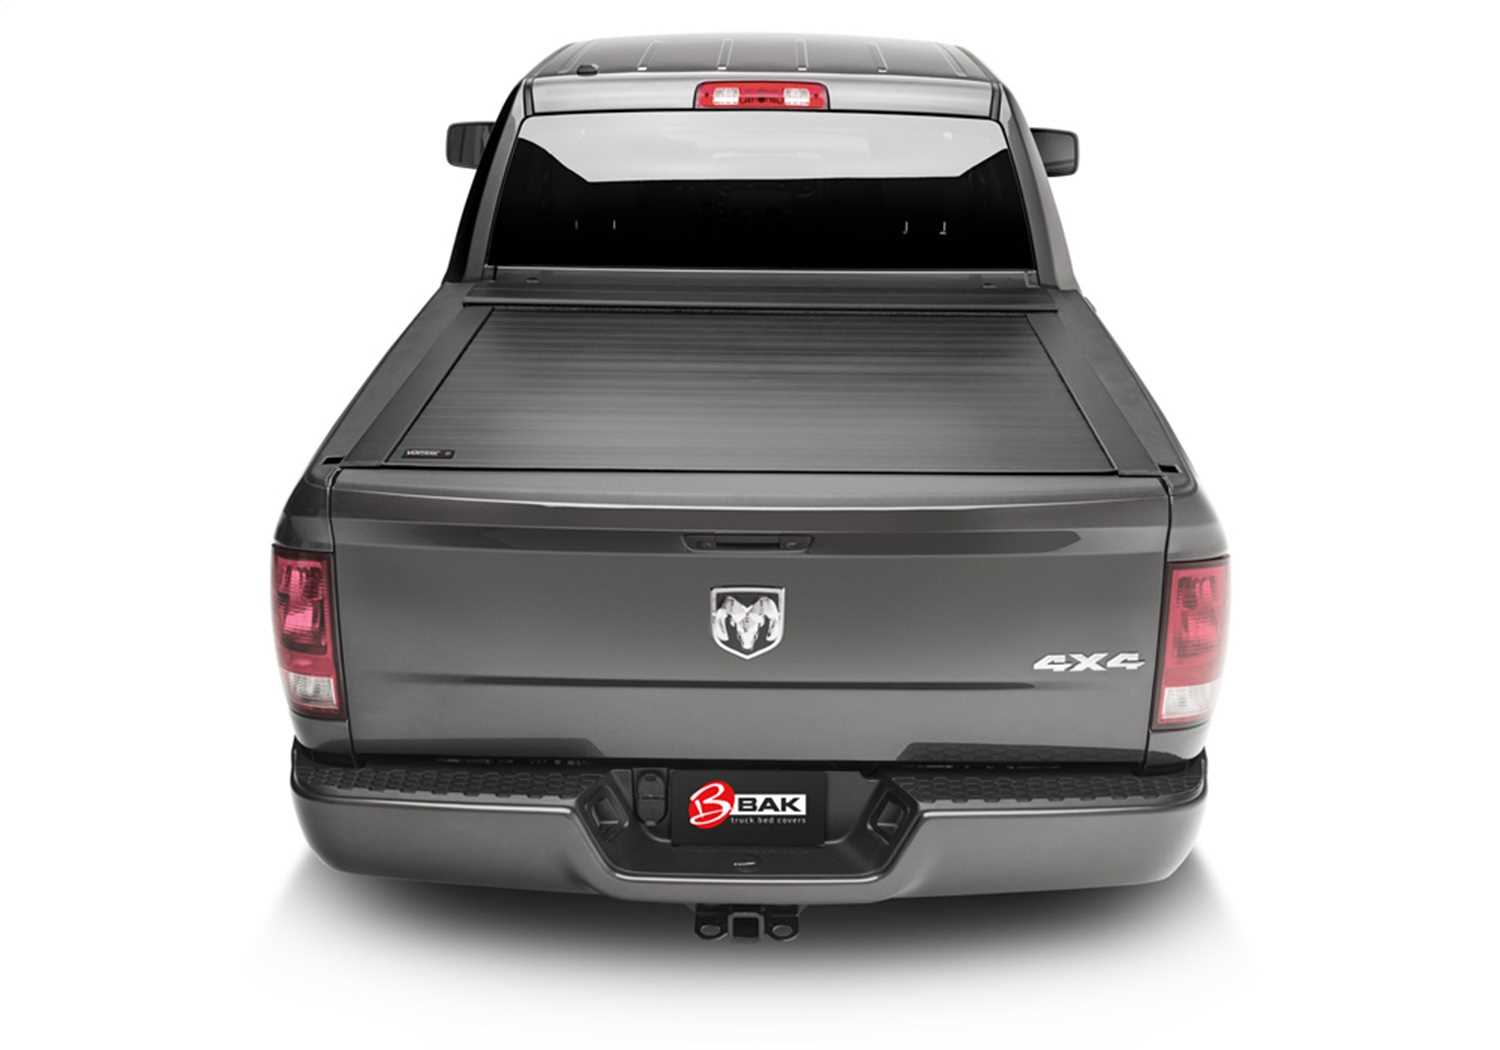 R25505 Bak Industries Vortrak Retractable Truck Bed Cover